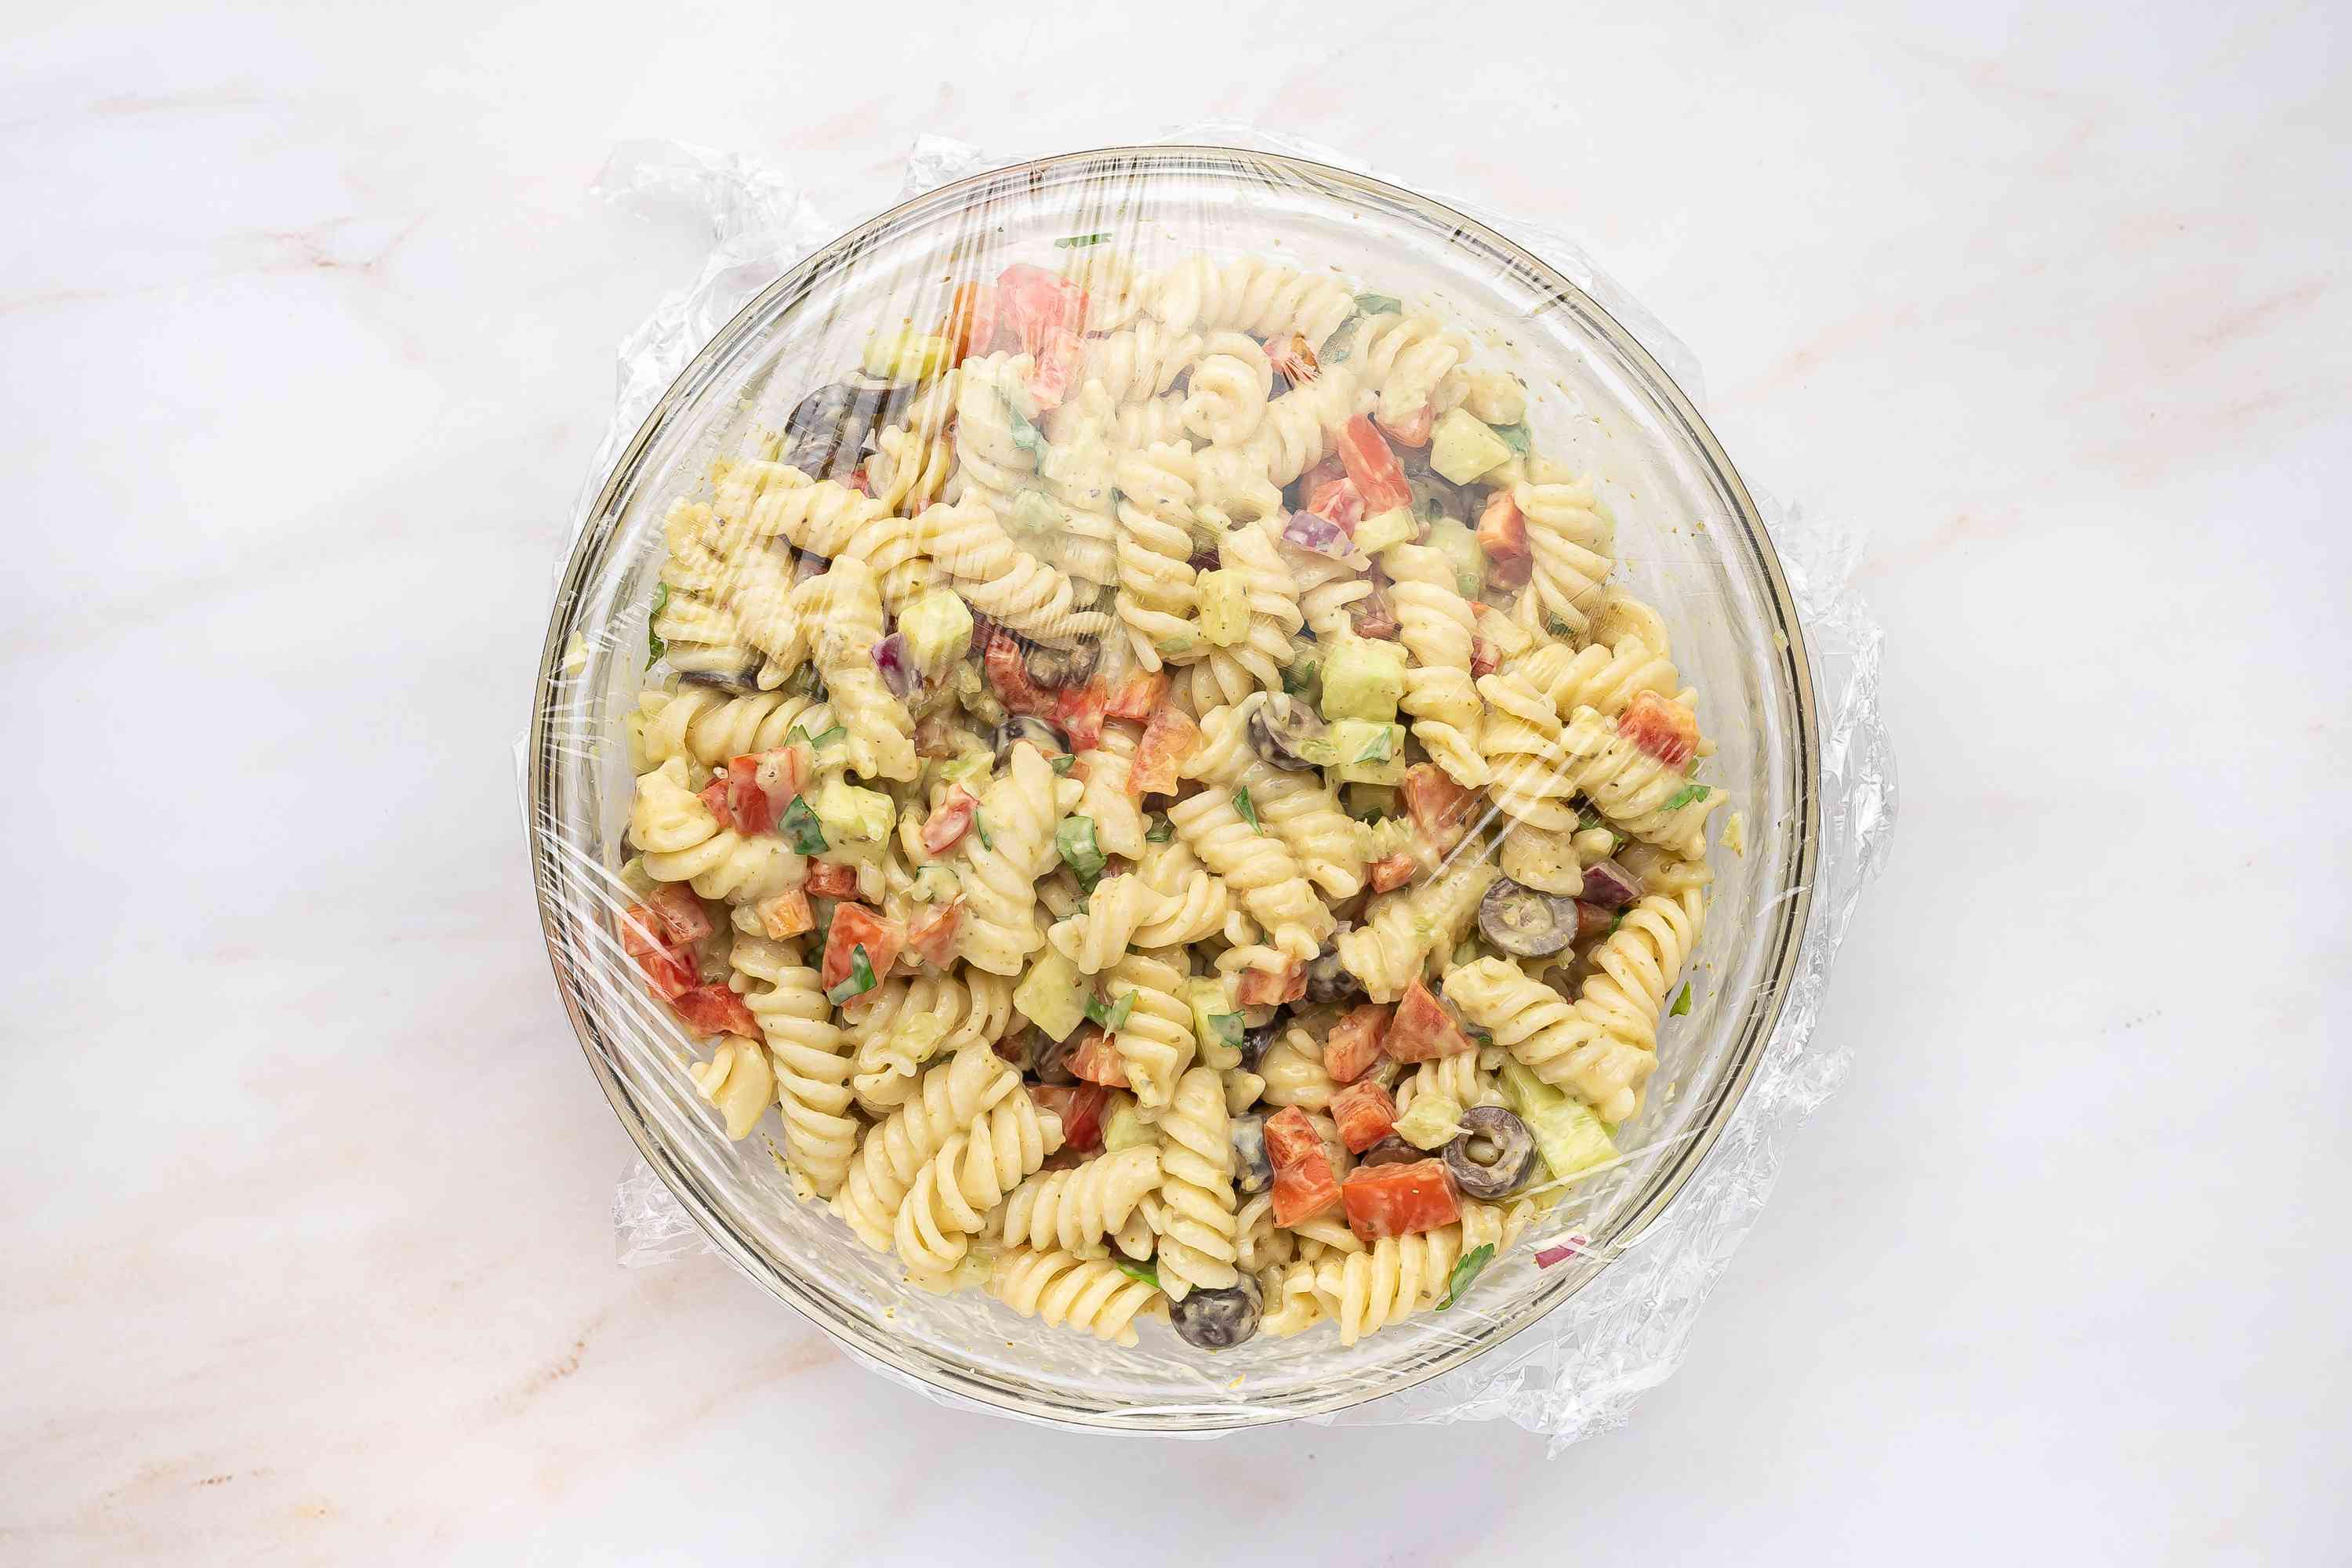 Garden Pesto Pasta Salad With Rotini in a bowl, covered with plastic wrap